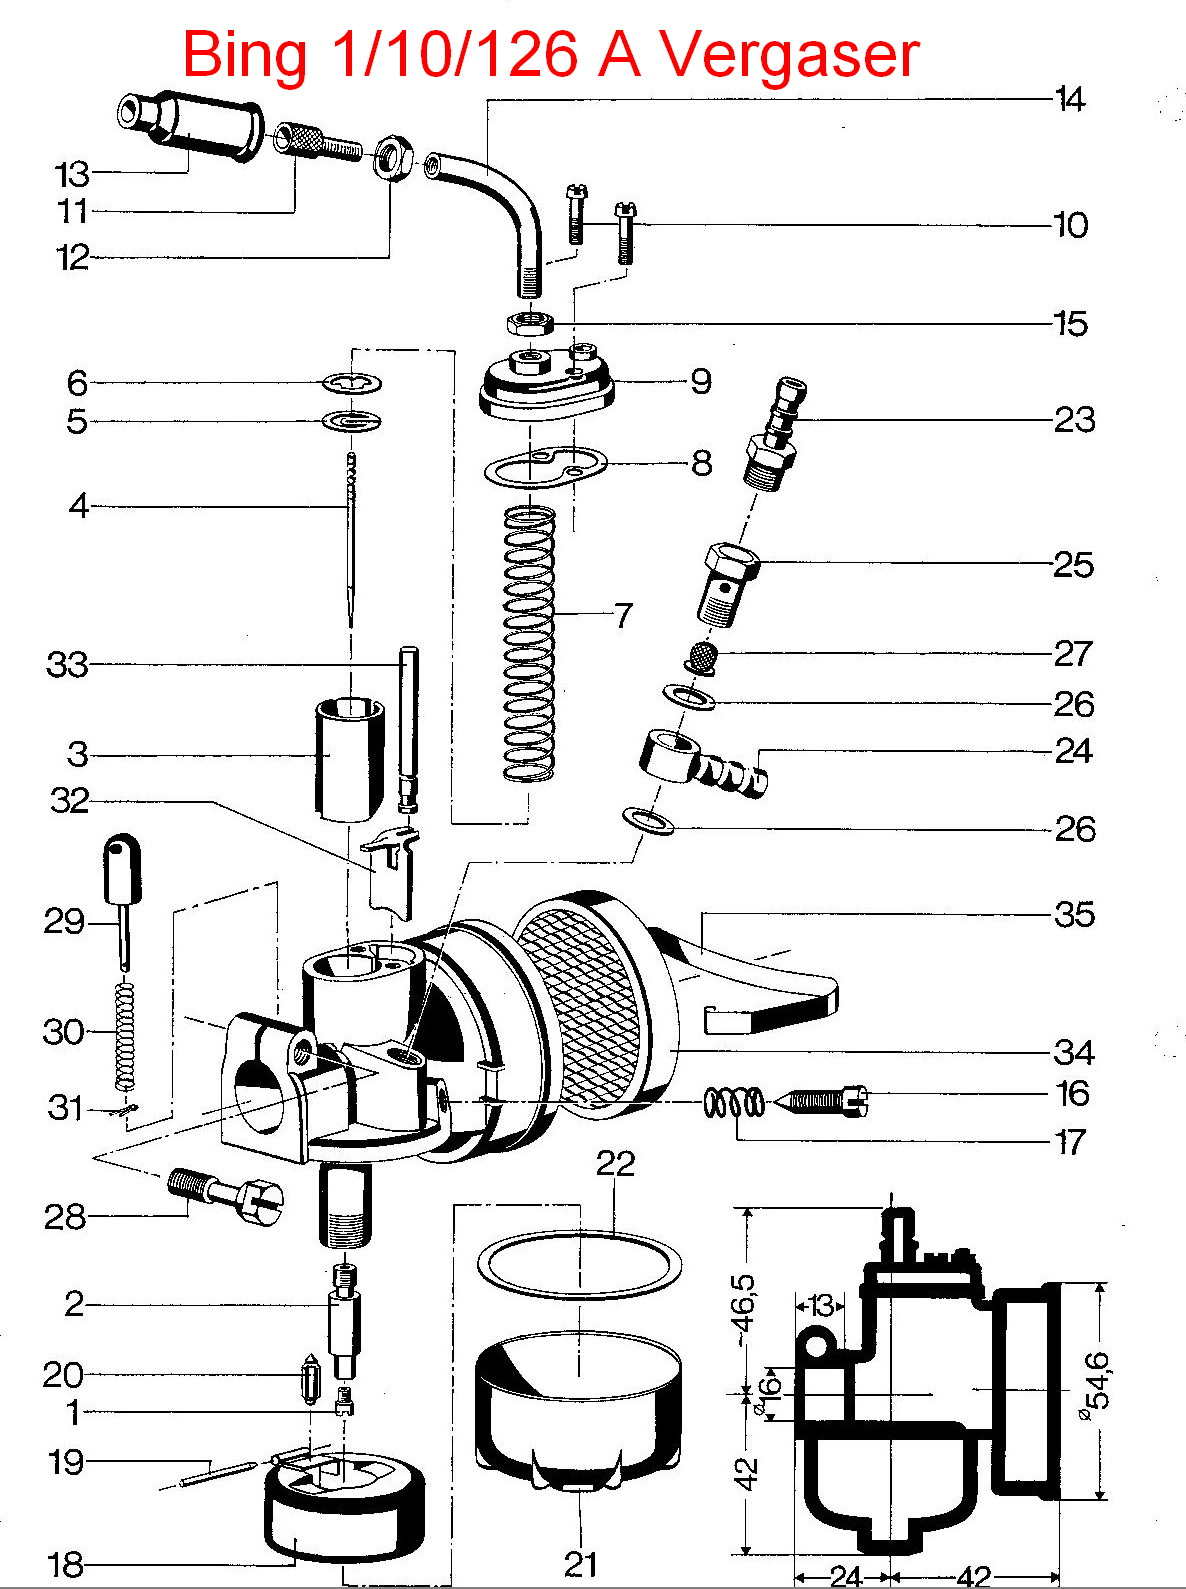 780880 Rear Brake Caliper Removal Question 2 also 1046746 After Market Speedo Installation Help as well Harley Davidson Vector together with Kolorowanki Motocykle likewise Index. on harley road king